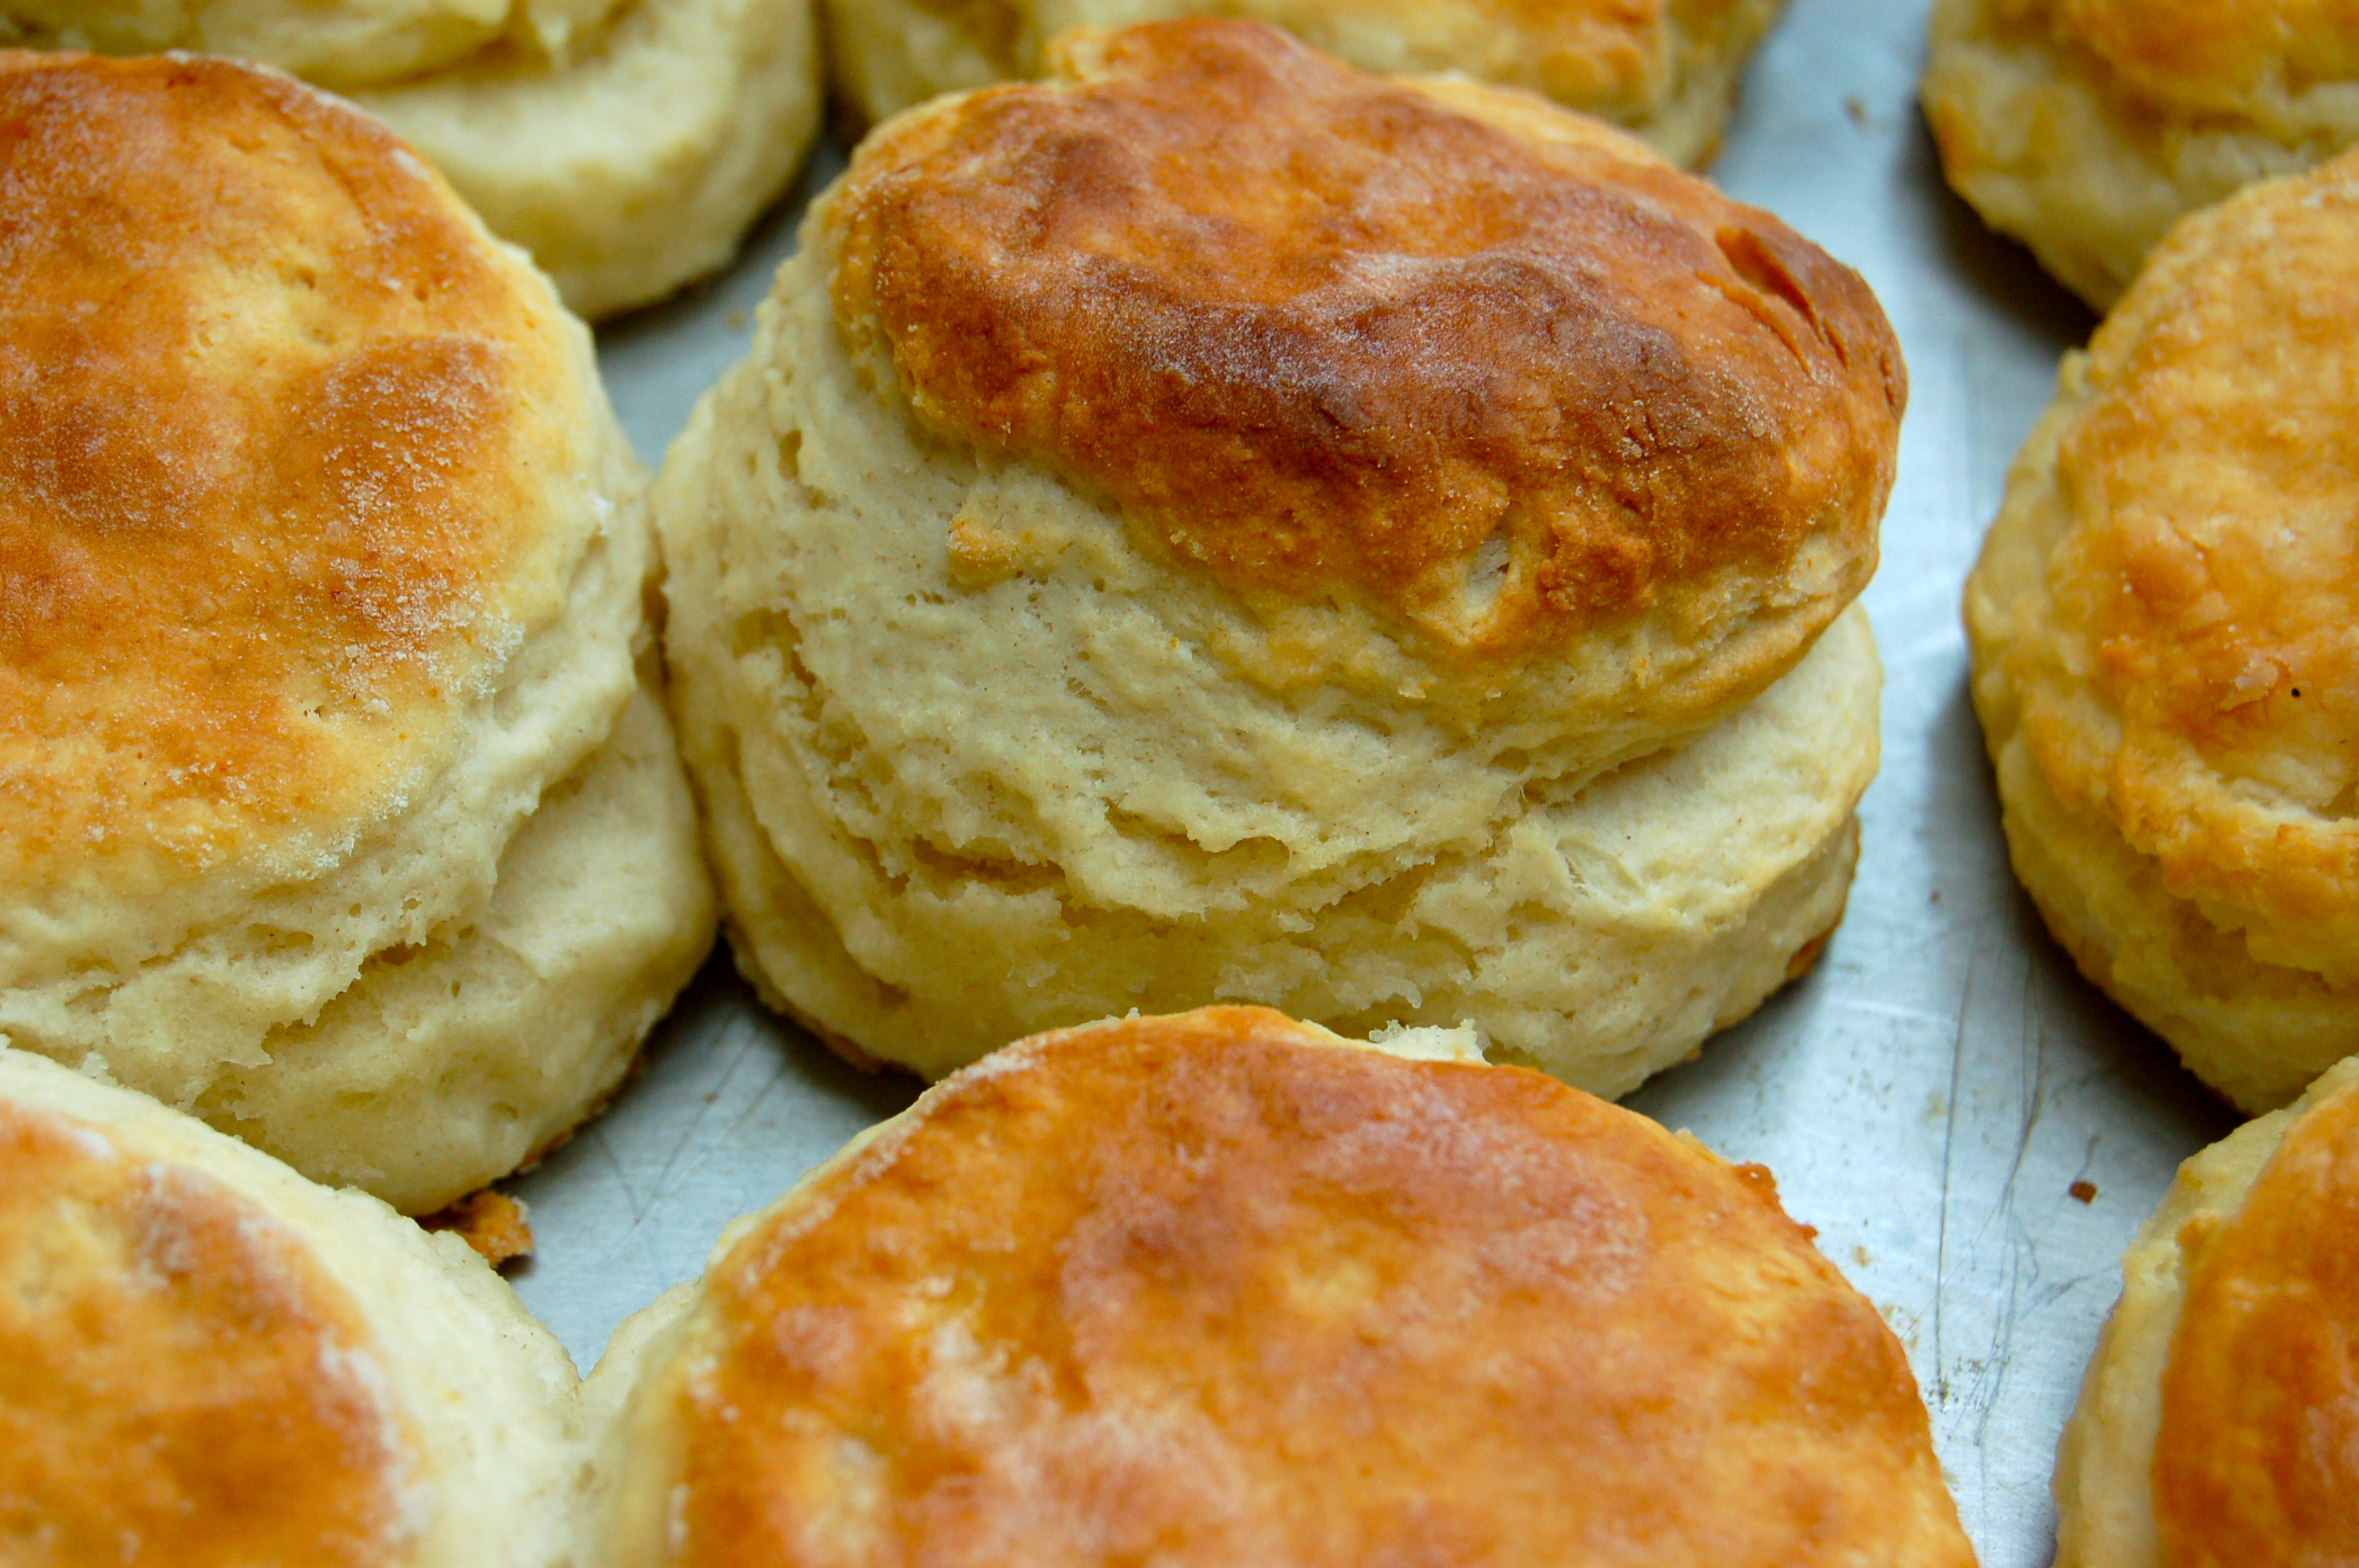 Homemade fluffy biscuits are easy to make with this simple recipe using plenty of baking powder to help create giant biscuits. Serve with gravy or butter and jam. By John Pickett; WATCH. Cheddar Bay Biscuits.